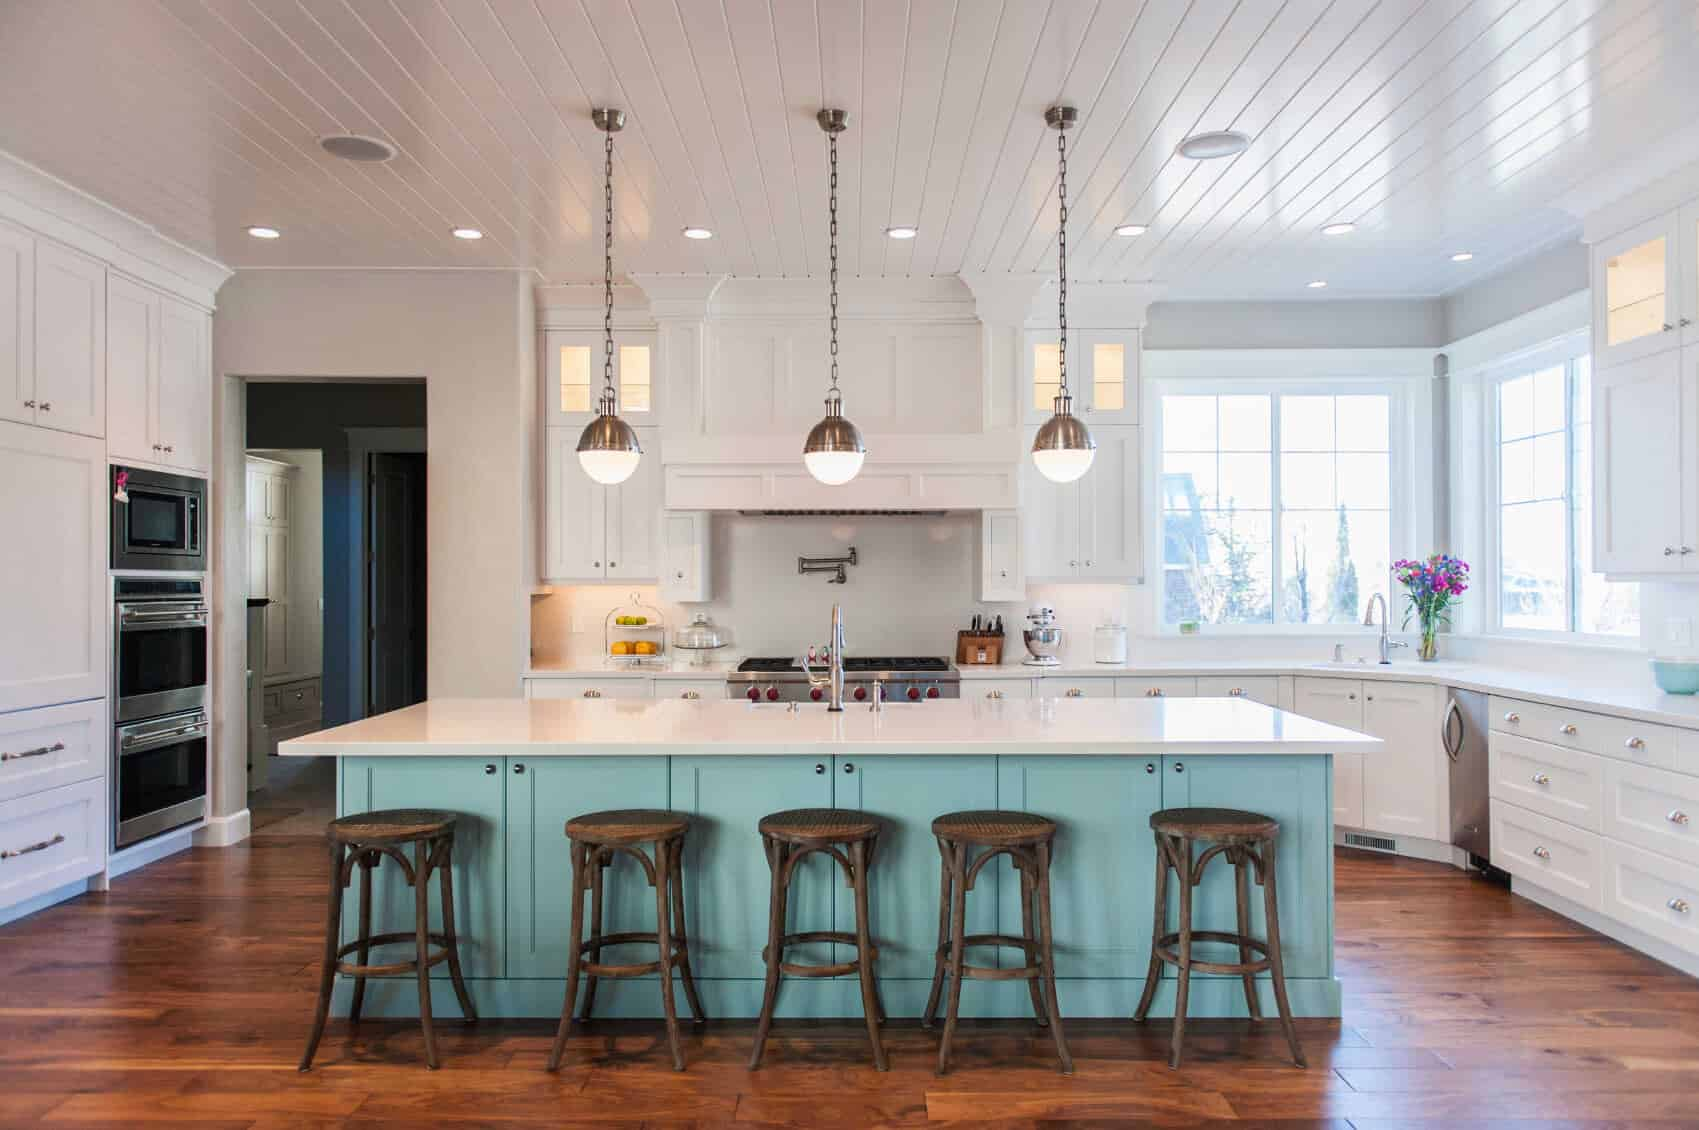 A focused look at this kitchen's pretty center island with a breakfast bar, lighted by pendant lights. This kitchen offers white kitchen counters and cabinetry.